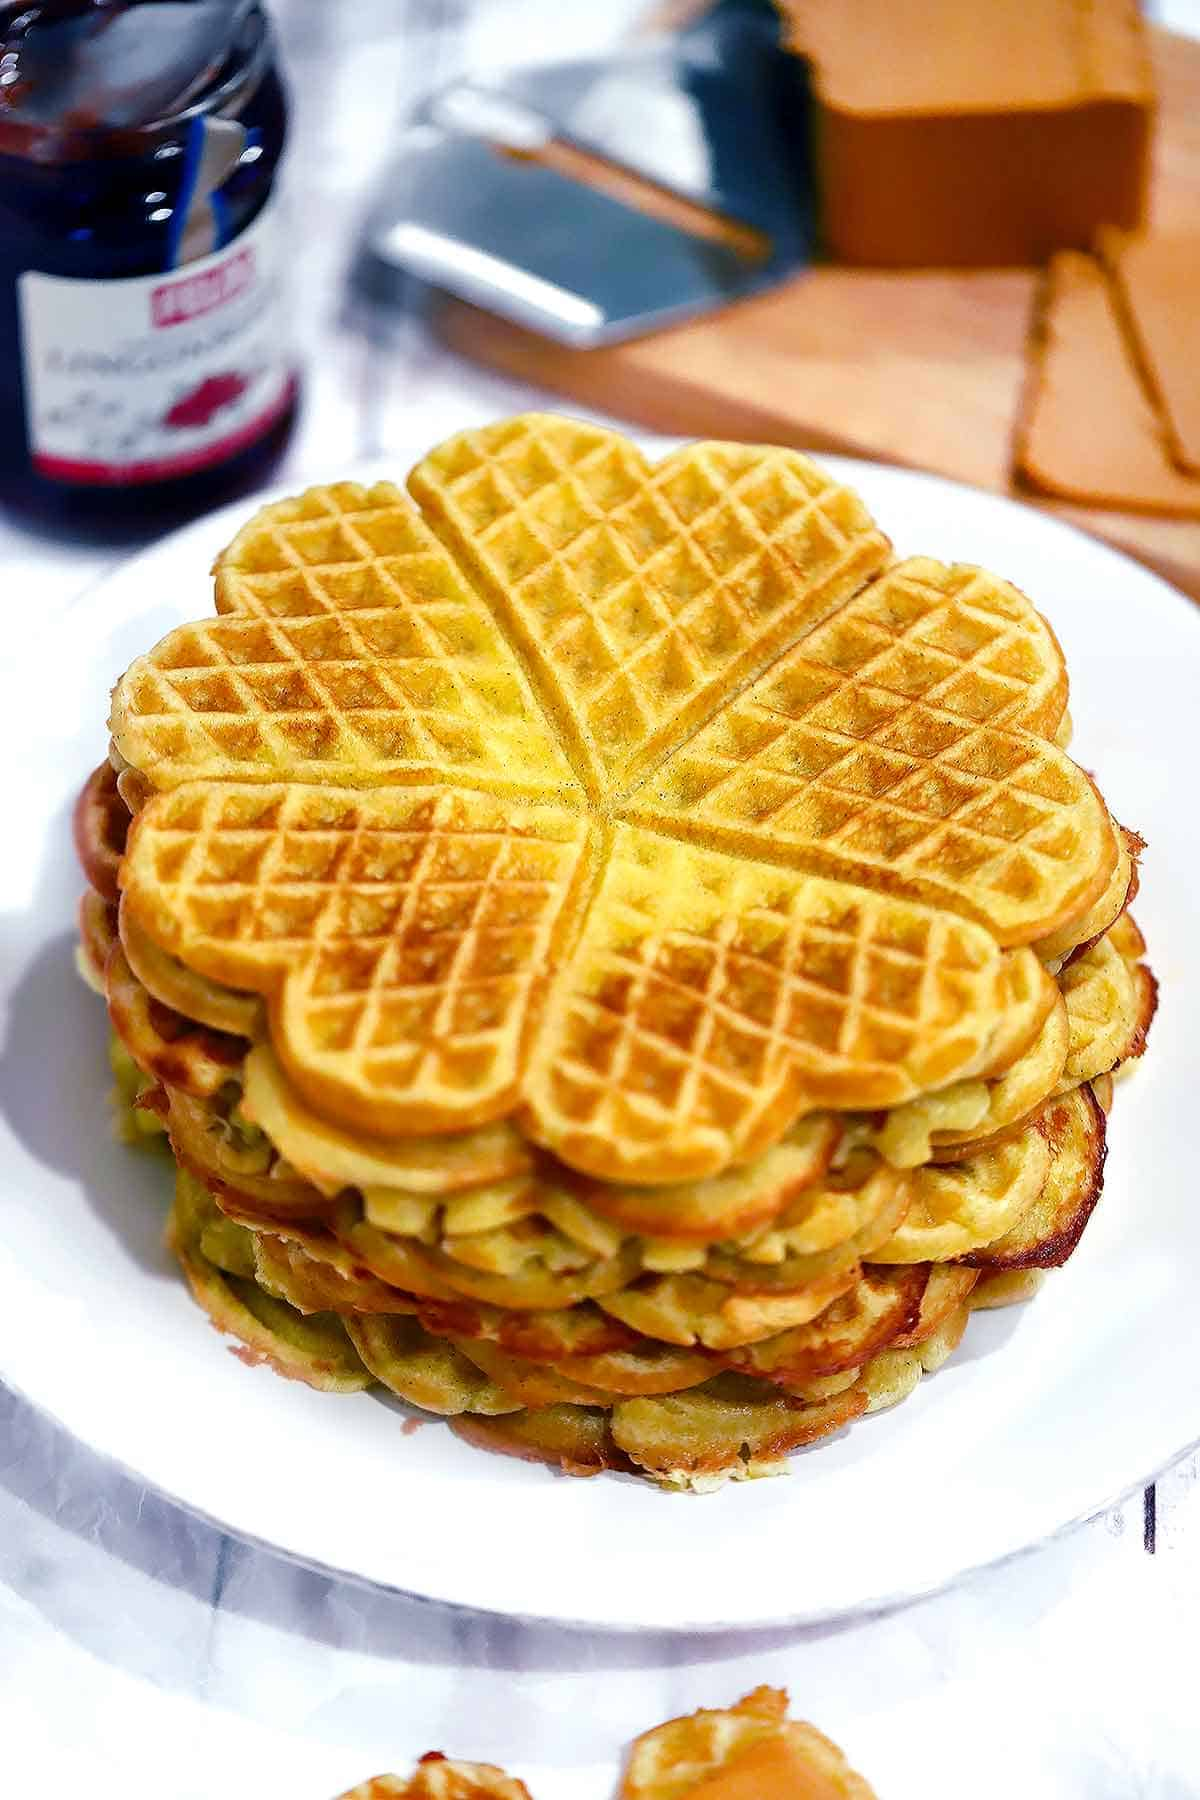 A stack of heart-shaped Norwegian waffles on a white plate with brown cheese in the background.